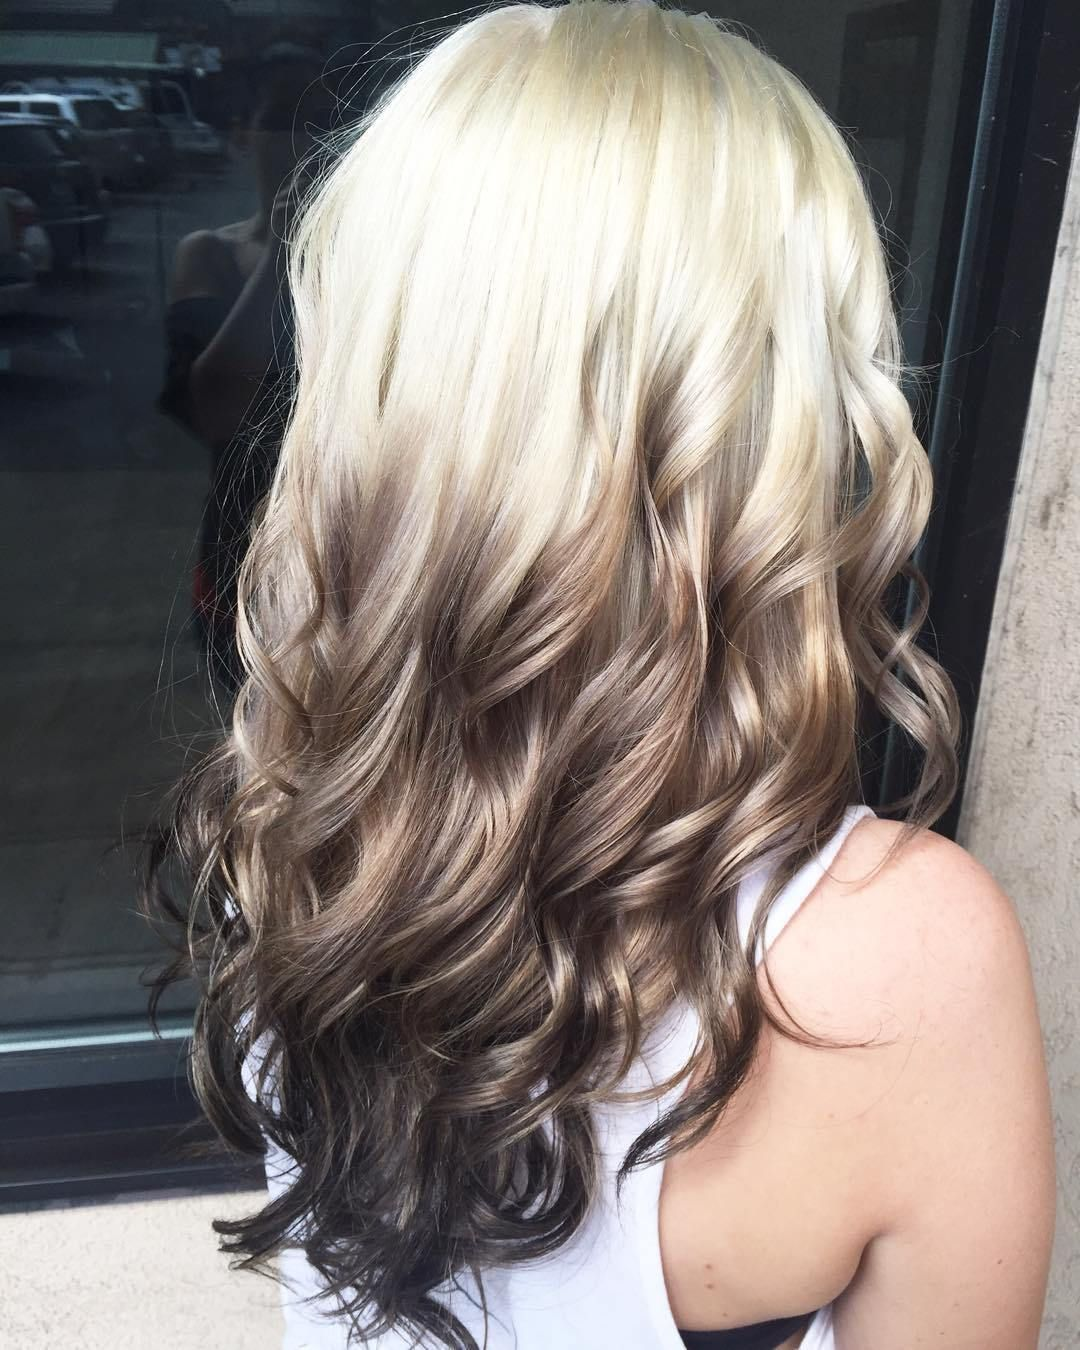 60 Best Ombre Hair Color Ideas For Blond Brown Red And Black Hair Ombre Hair Blonde Dark Ombre Hair Ombre Hair Color